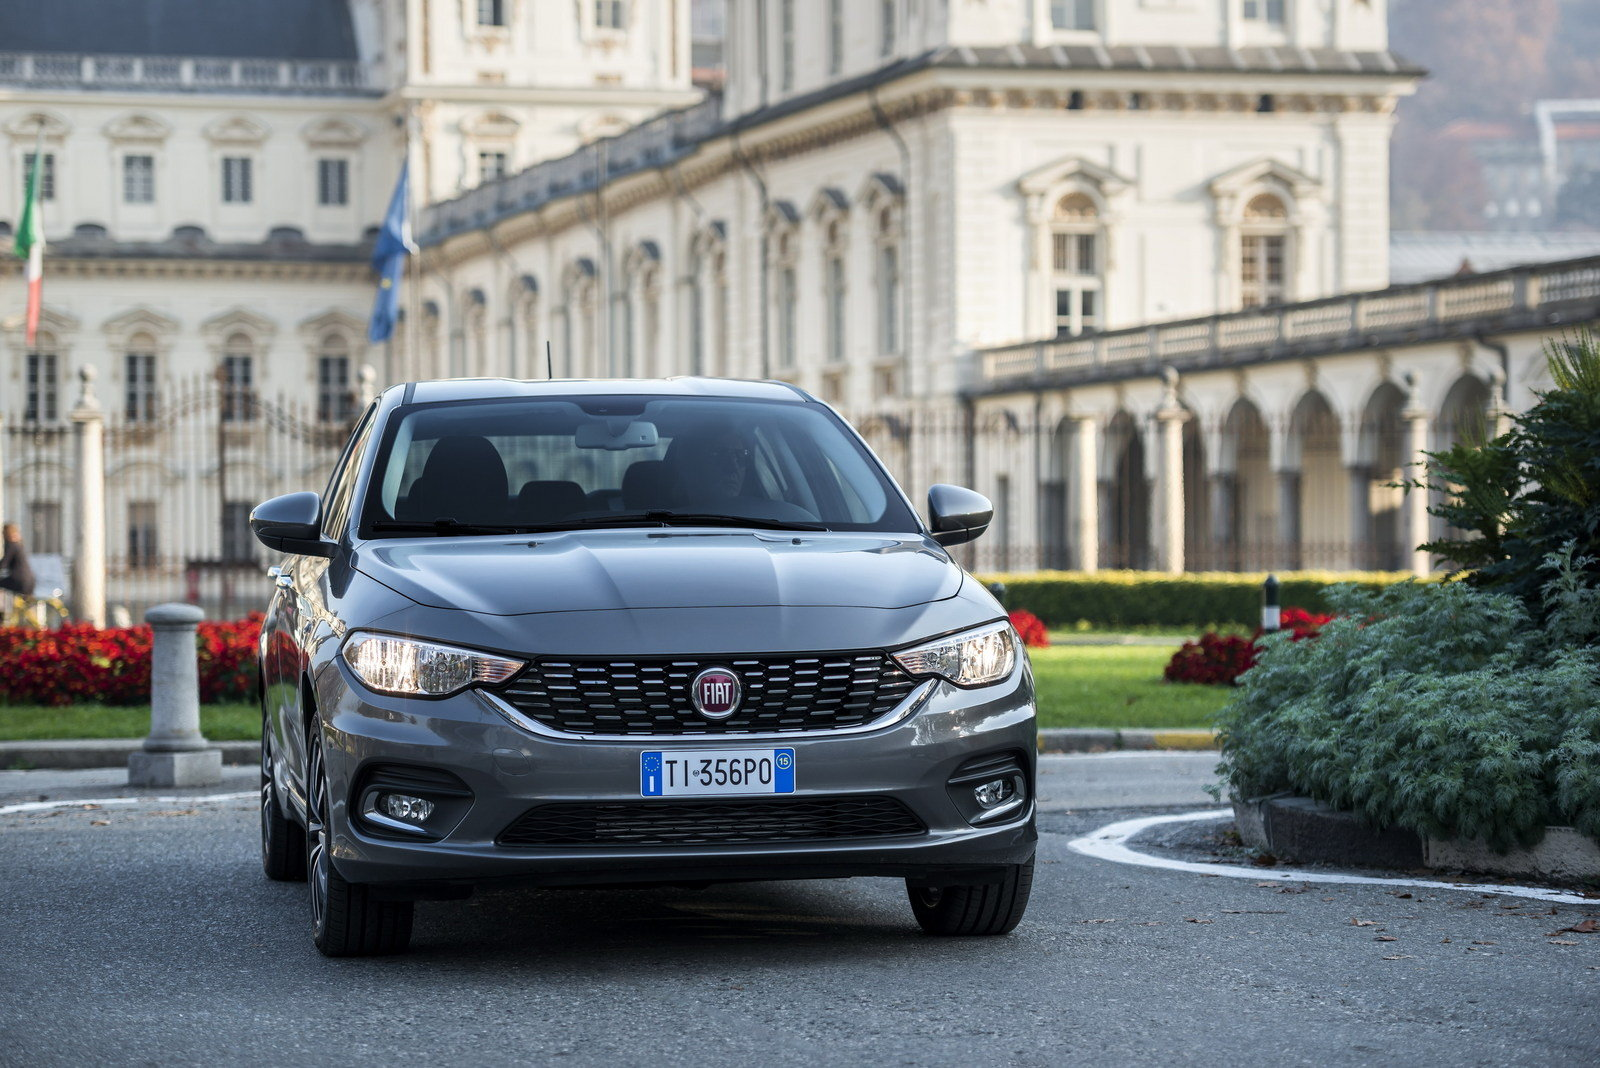 2017 fiat tipo picture 657819 car review top speed. Black Bedroom Furniture Sets. Home Design Ideas